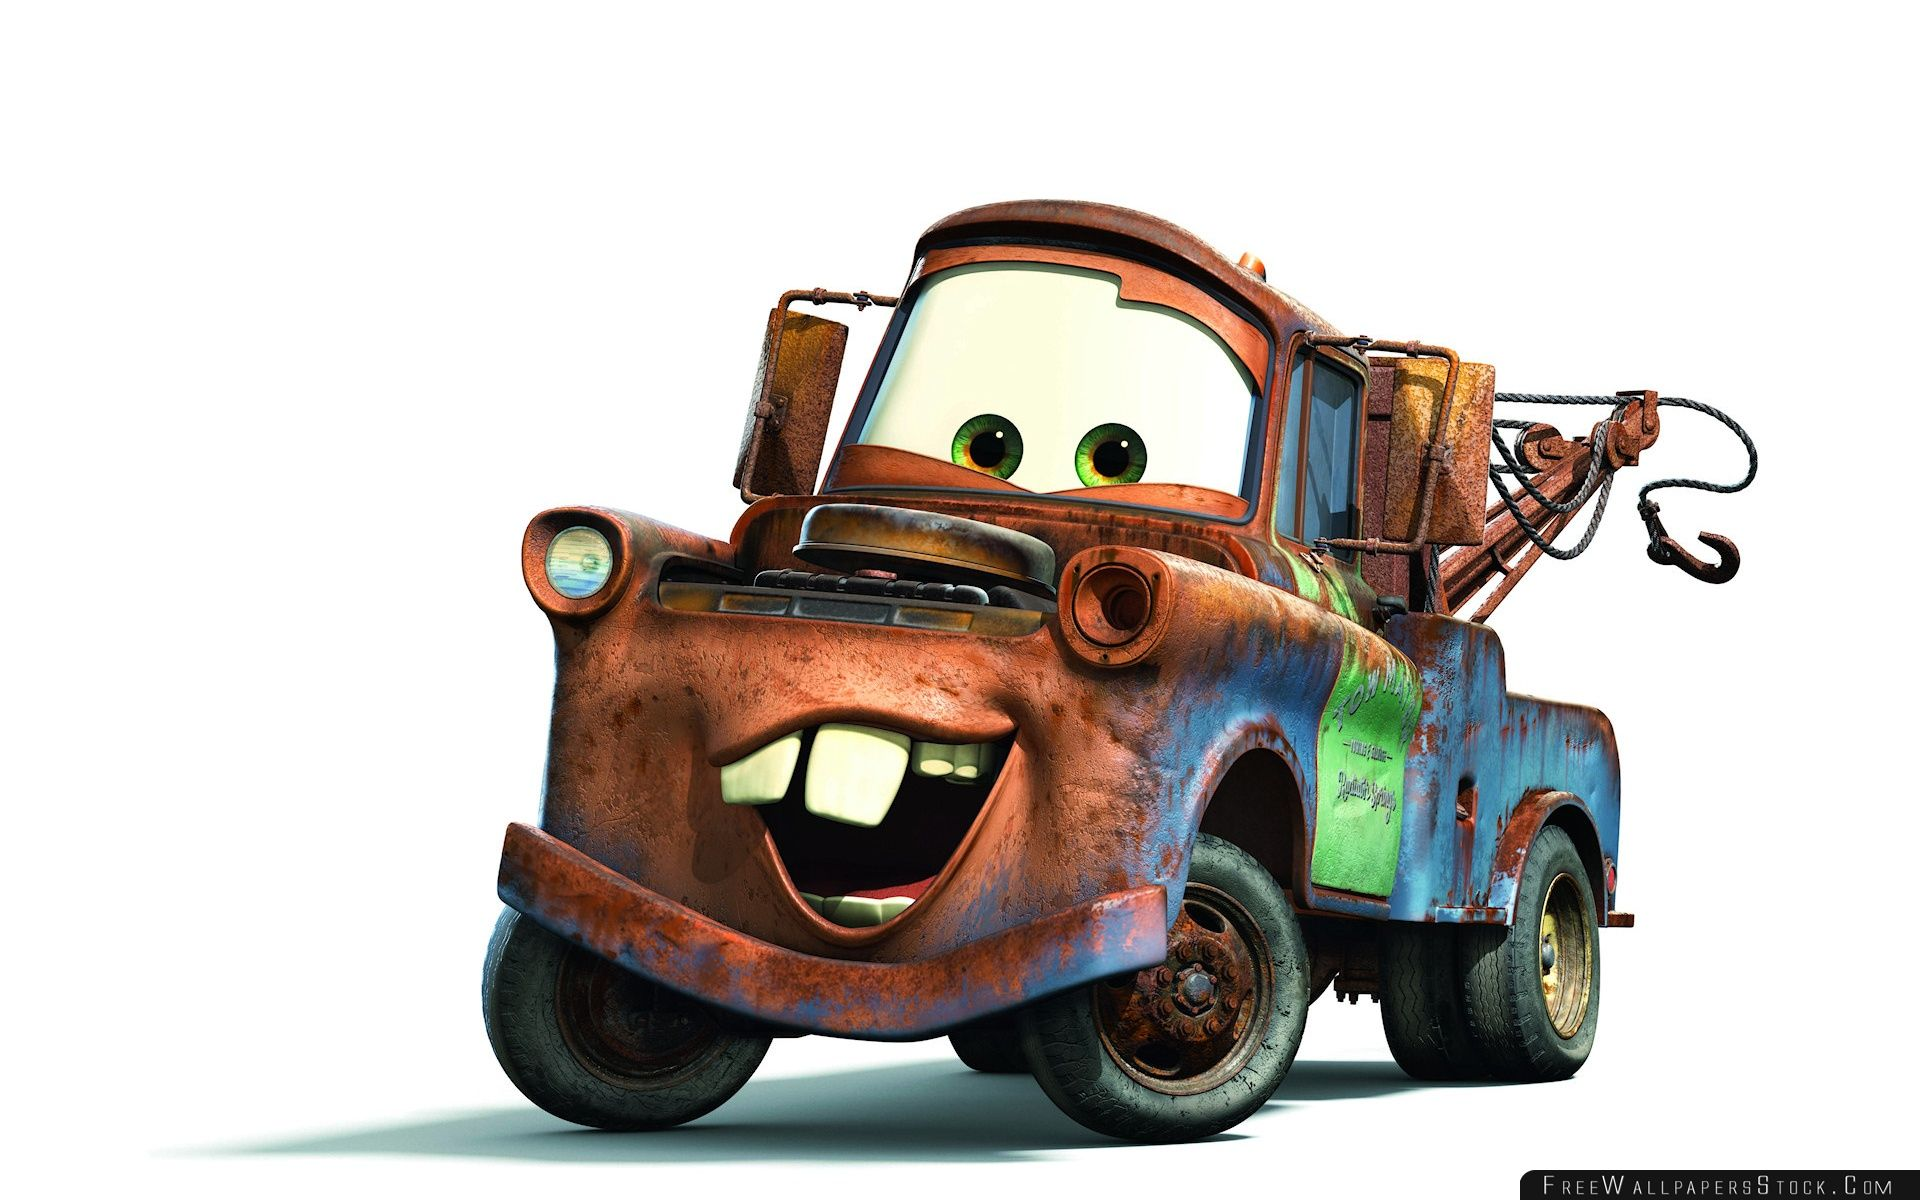 Download Free Wallpaper Tow Mater Cars Movie